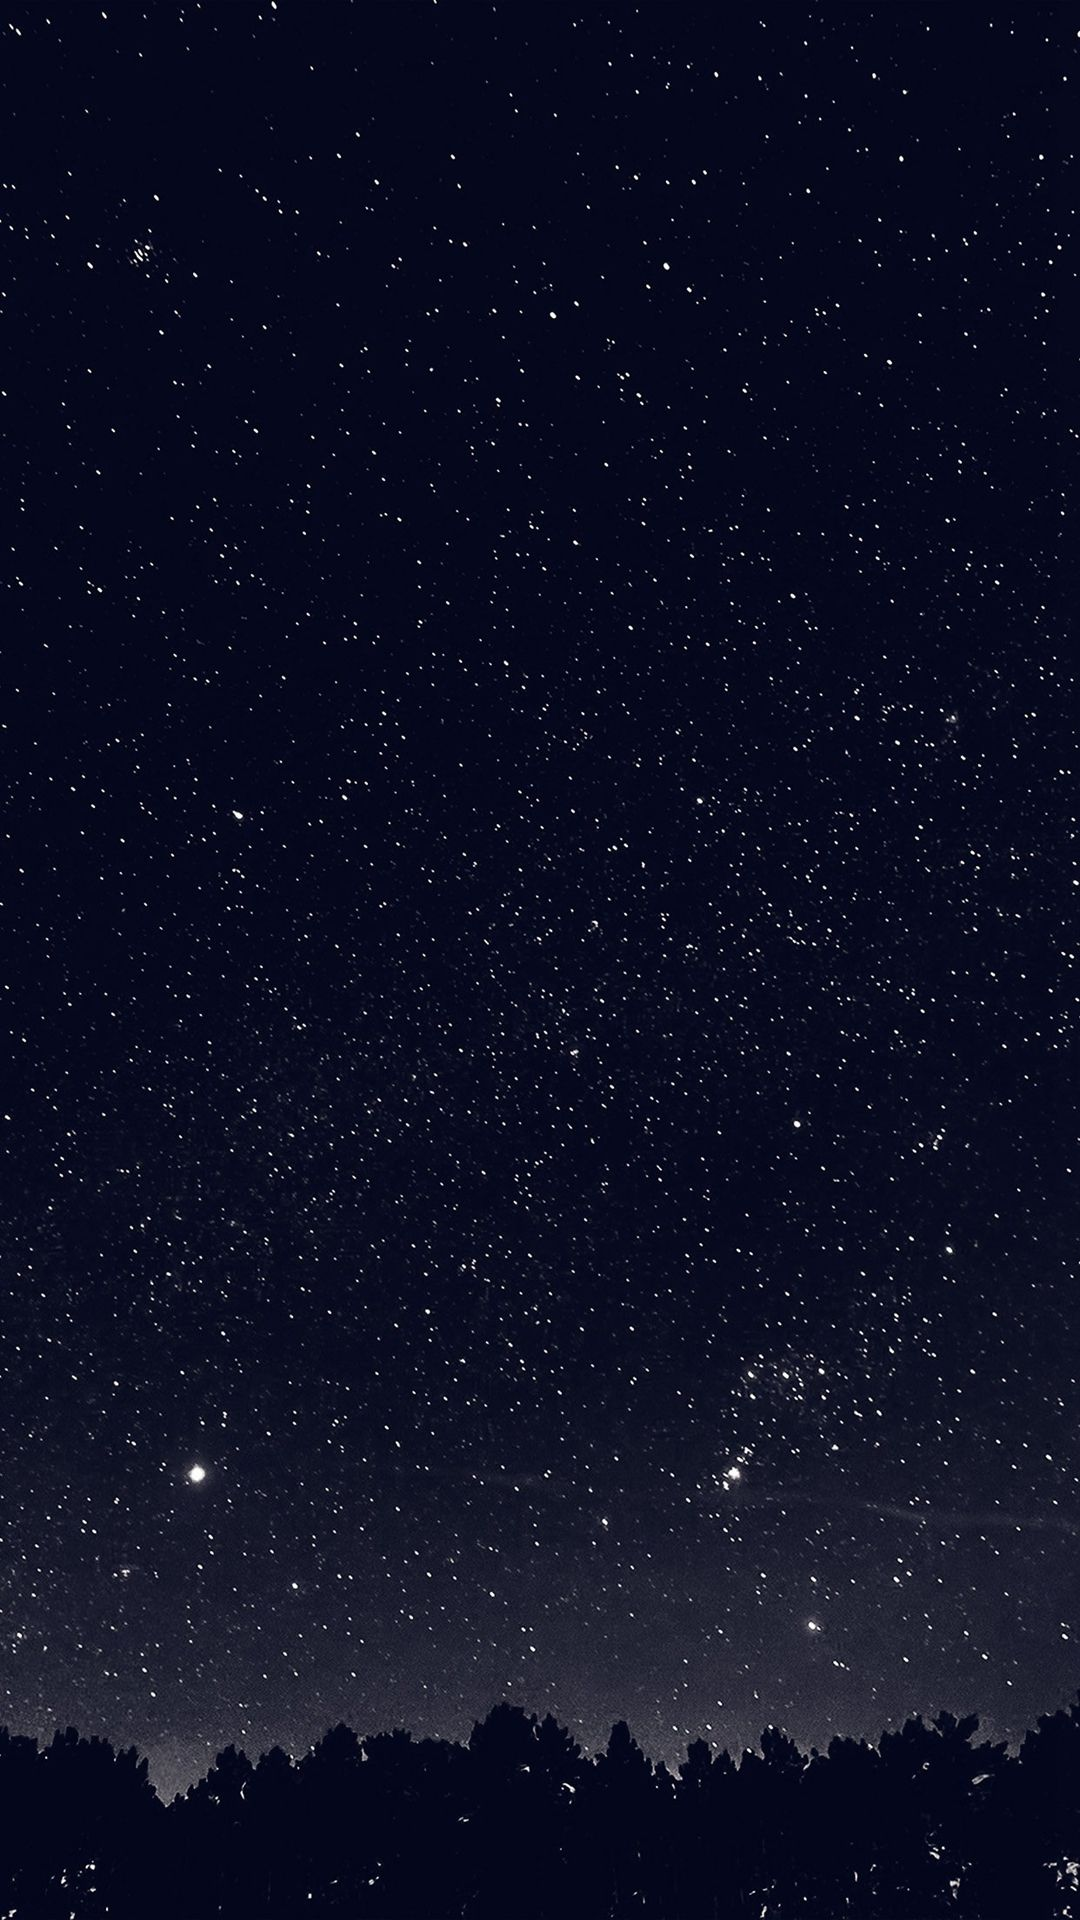 Space Sky Night Dark Nature Bw Iphone 6 Wallpaper Iphone Wallpaper Sky Iphone Wallpaper Night Sky Iphone Wallpaper Night